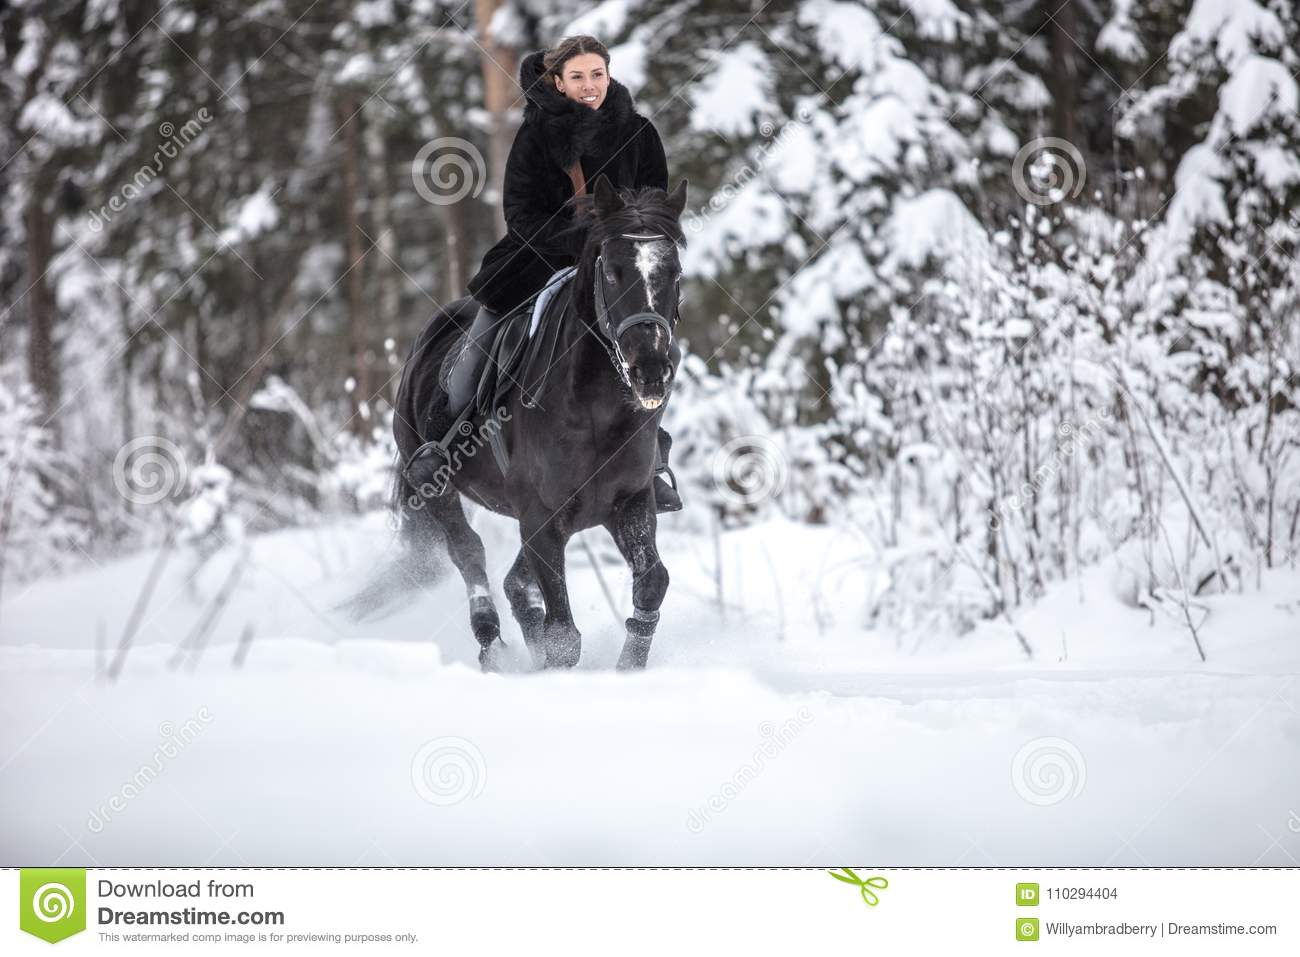 Black Horse Running In Snow On Winter Background Stock Photo Image Of Motion Portrait 110294404